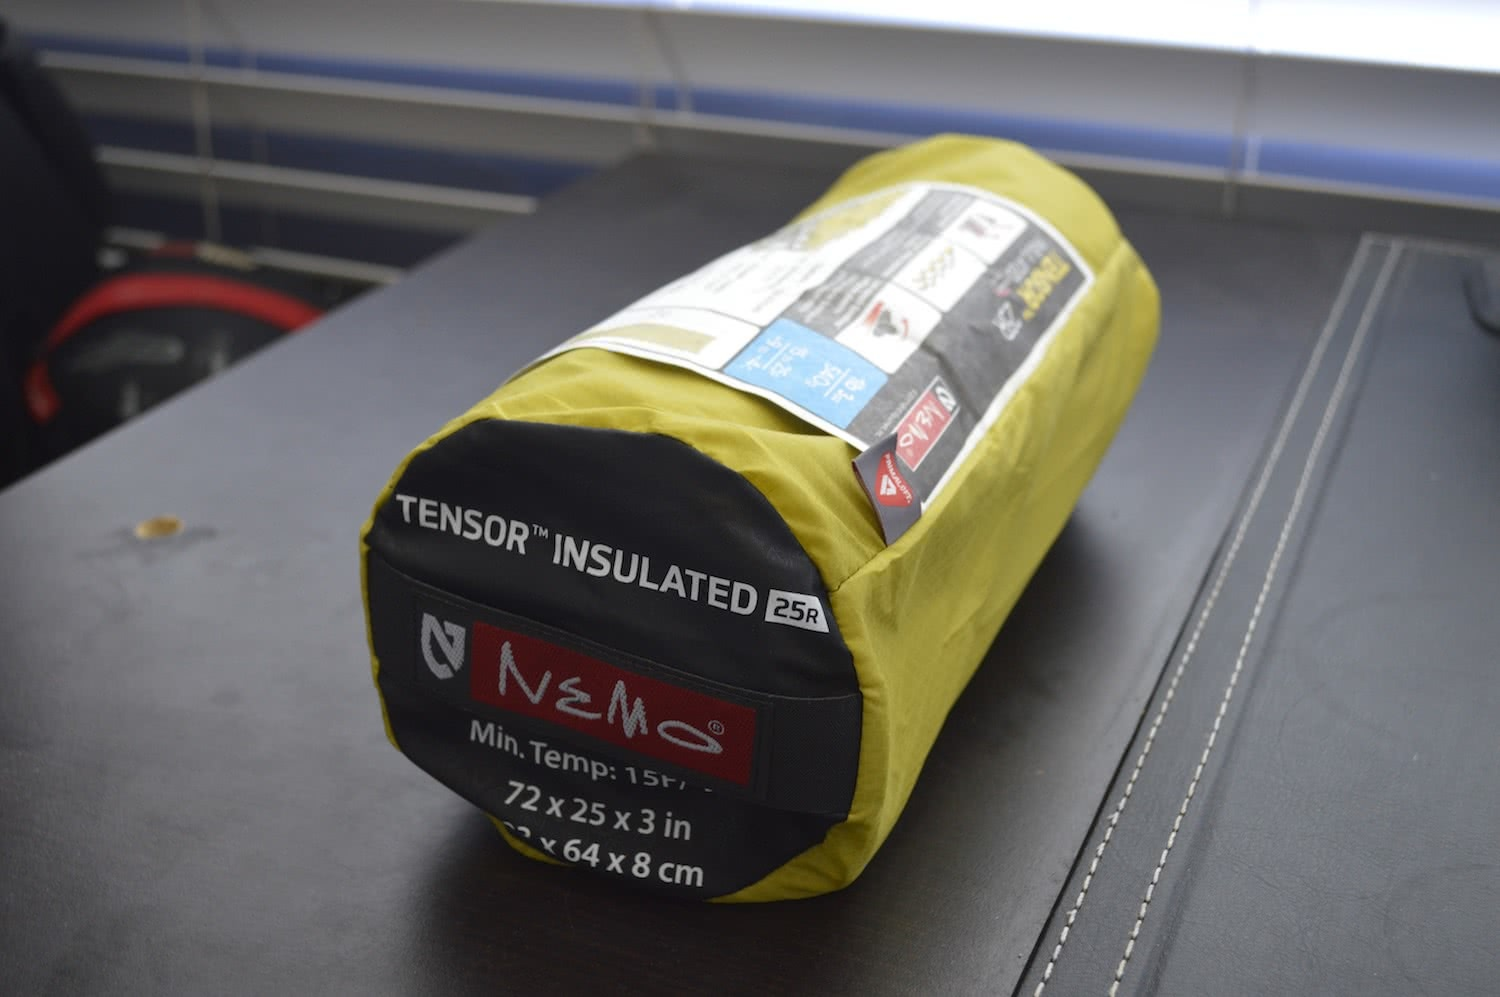 tim ashelford, nemo tensor 25r insulated review, sleeping, air pad, gear, packed